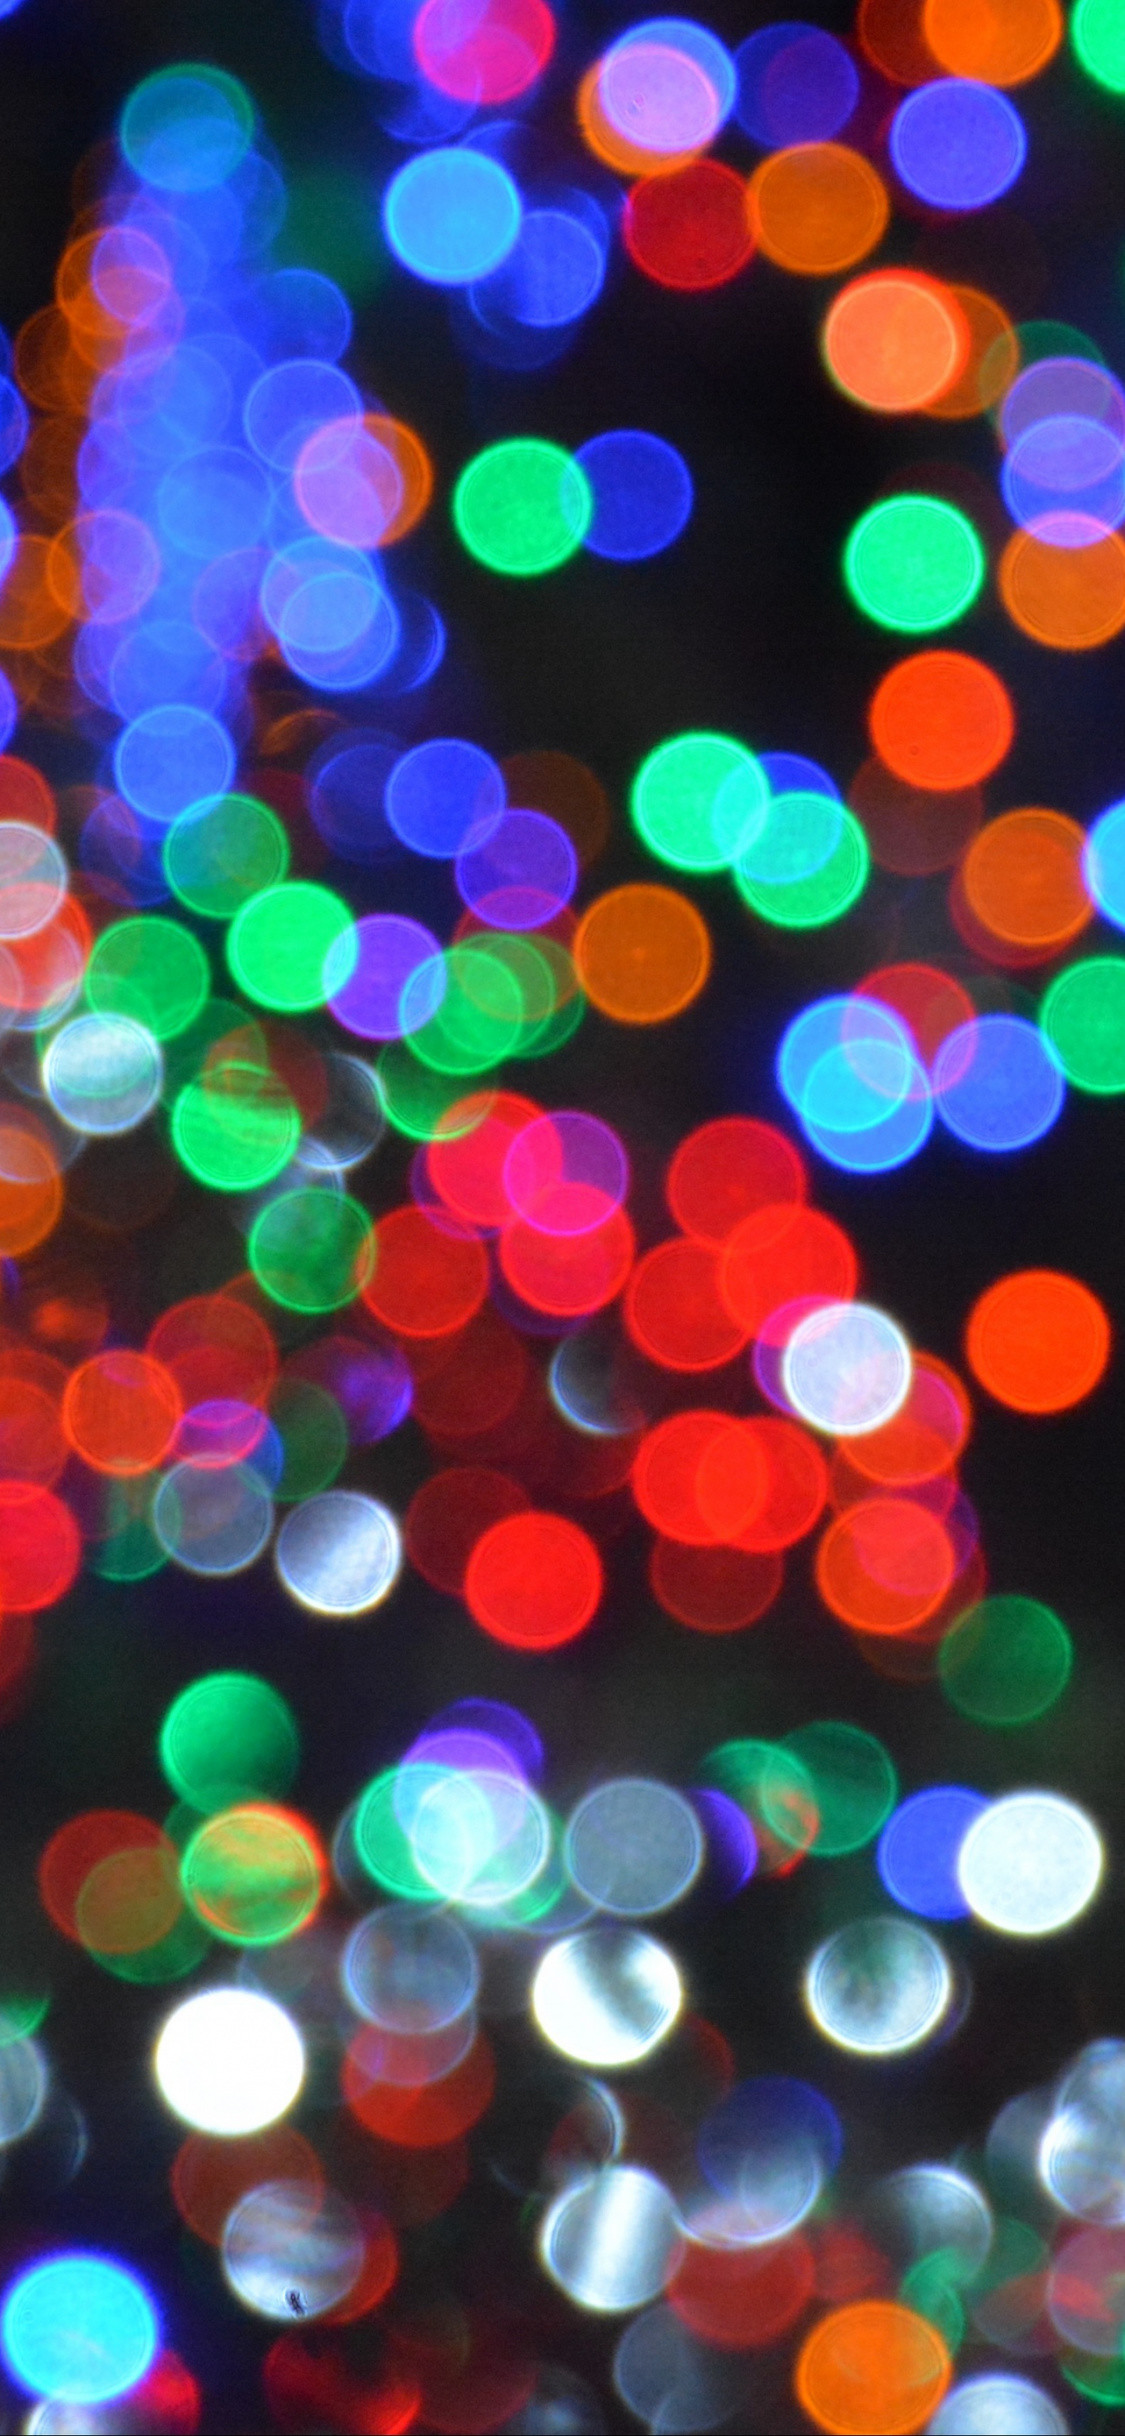 Christmas Lights Iphone Wallpaper 79 Images